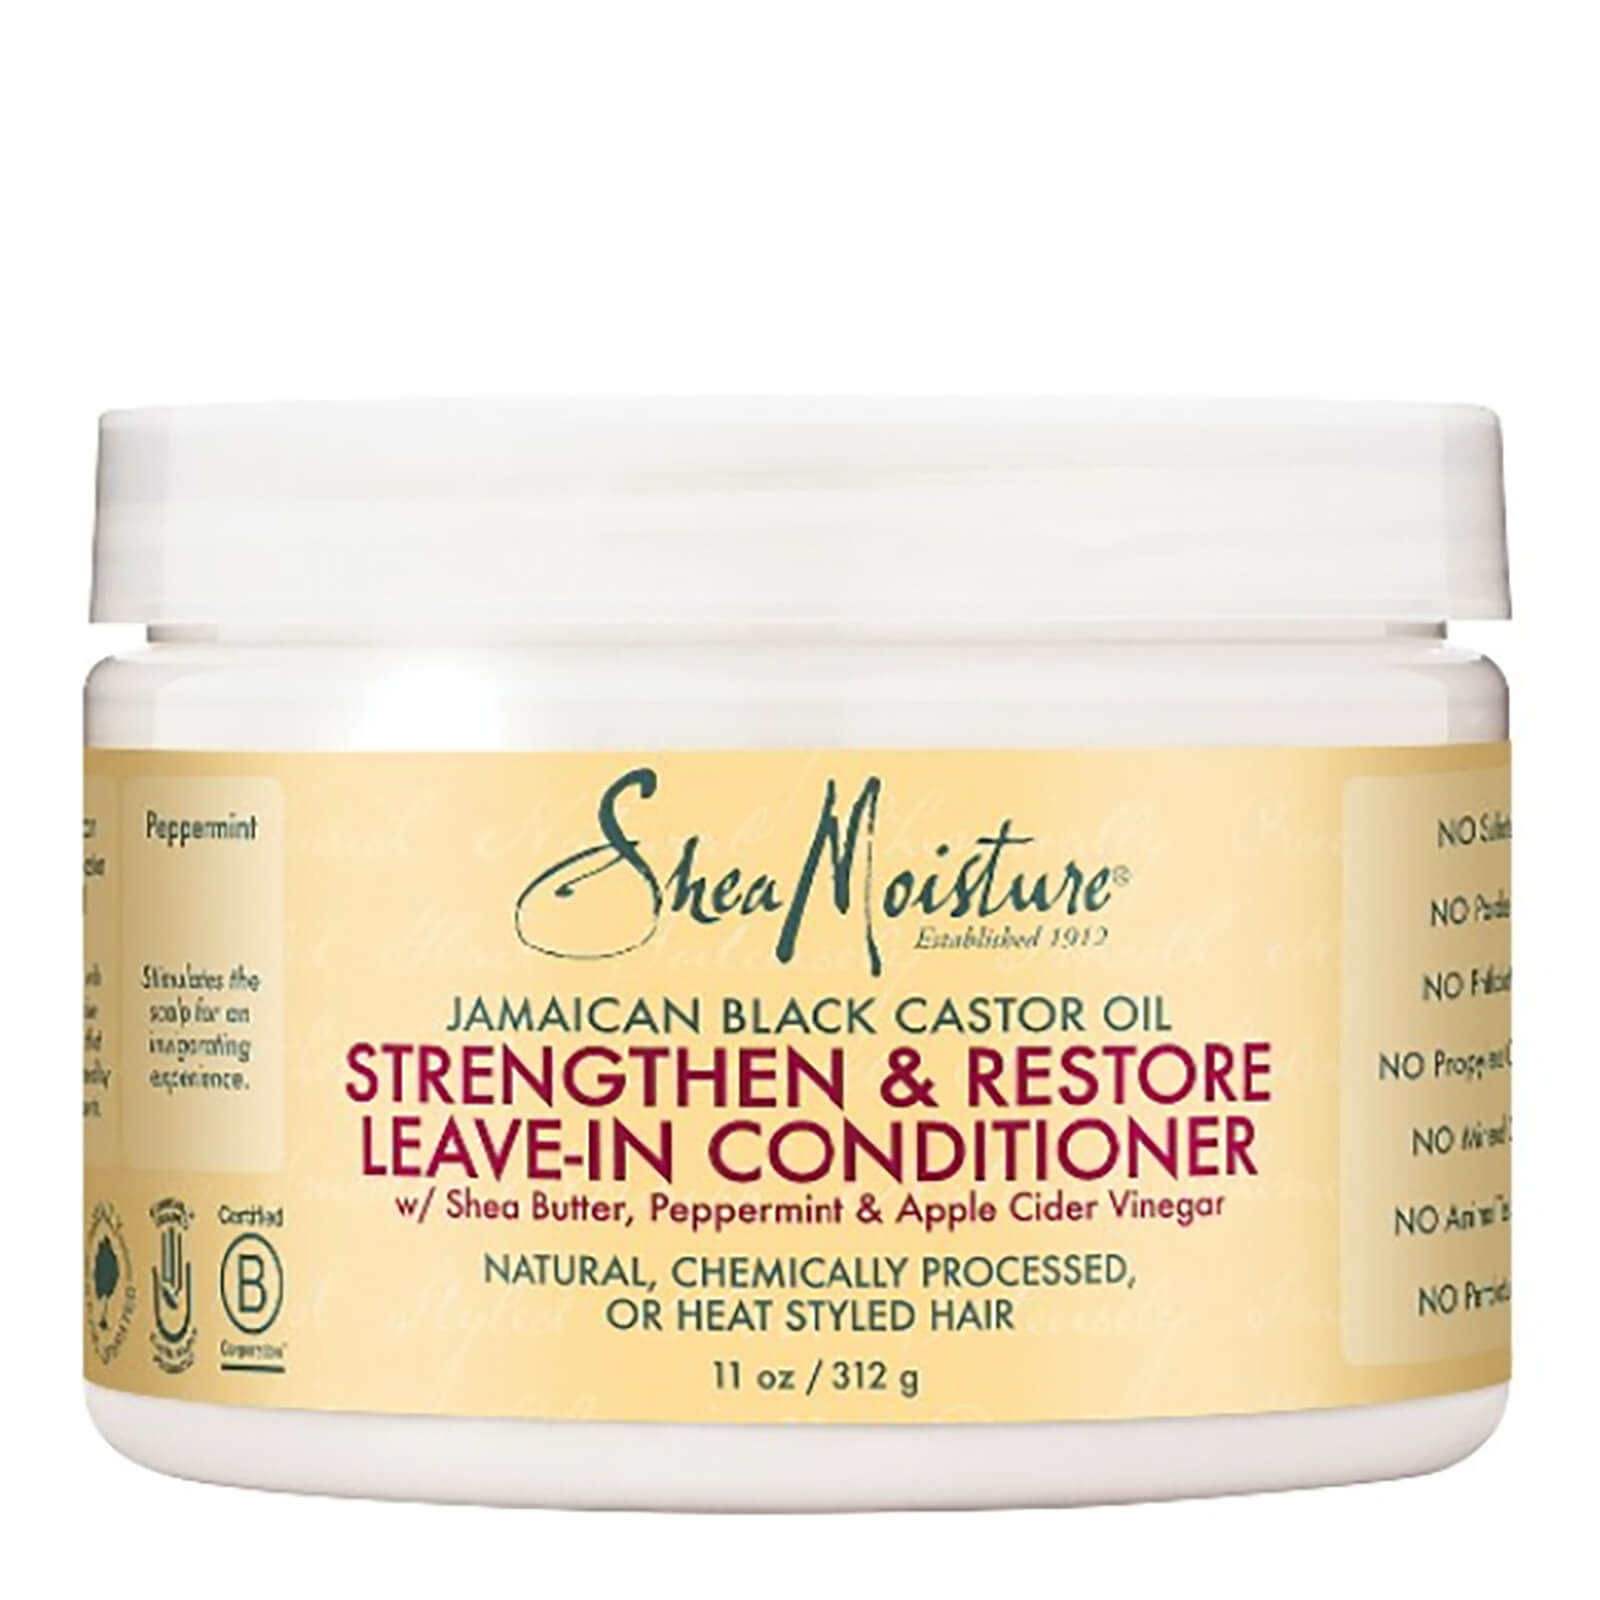 6121949ae3b Shea Moisture Jamaican Black Castor Oil Strengthen, Grow & Restore Leave-In  Conditioner 312g   Free Shipping   Lookfantastic